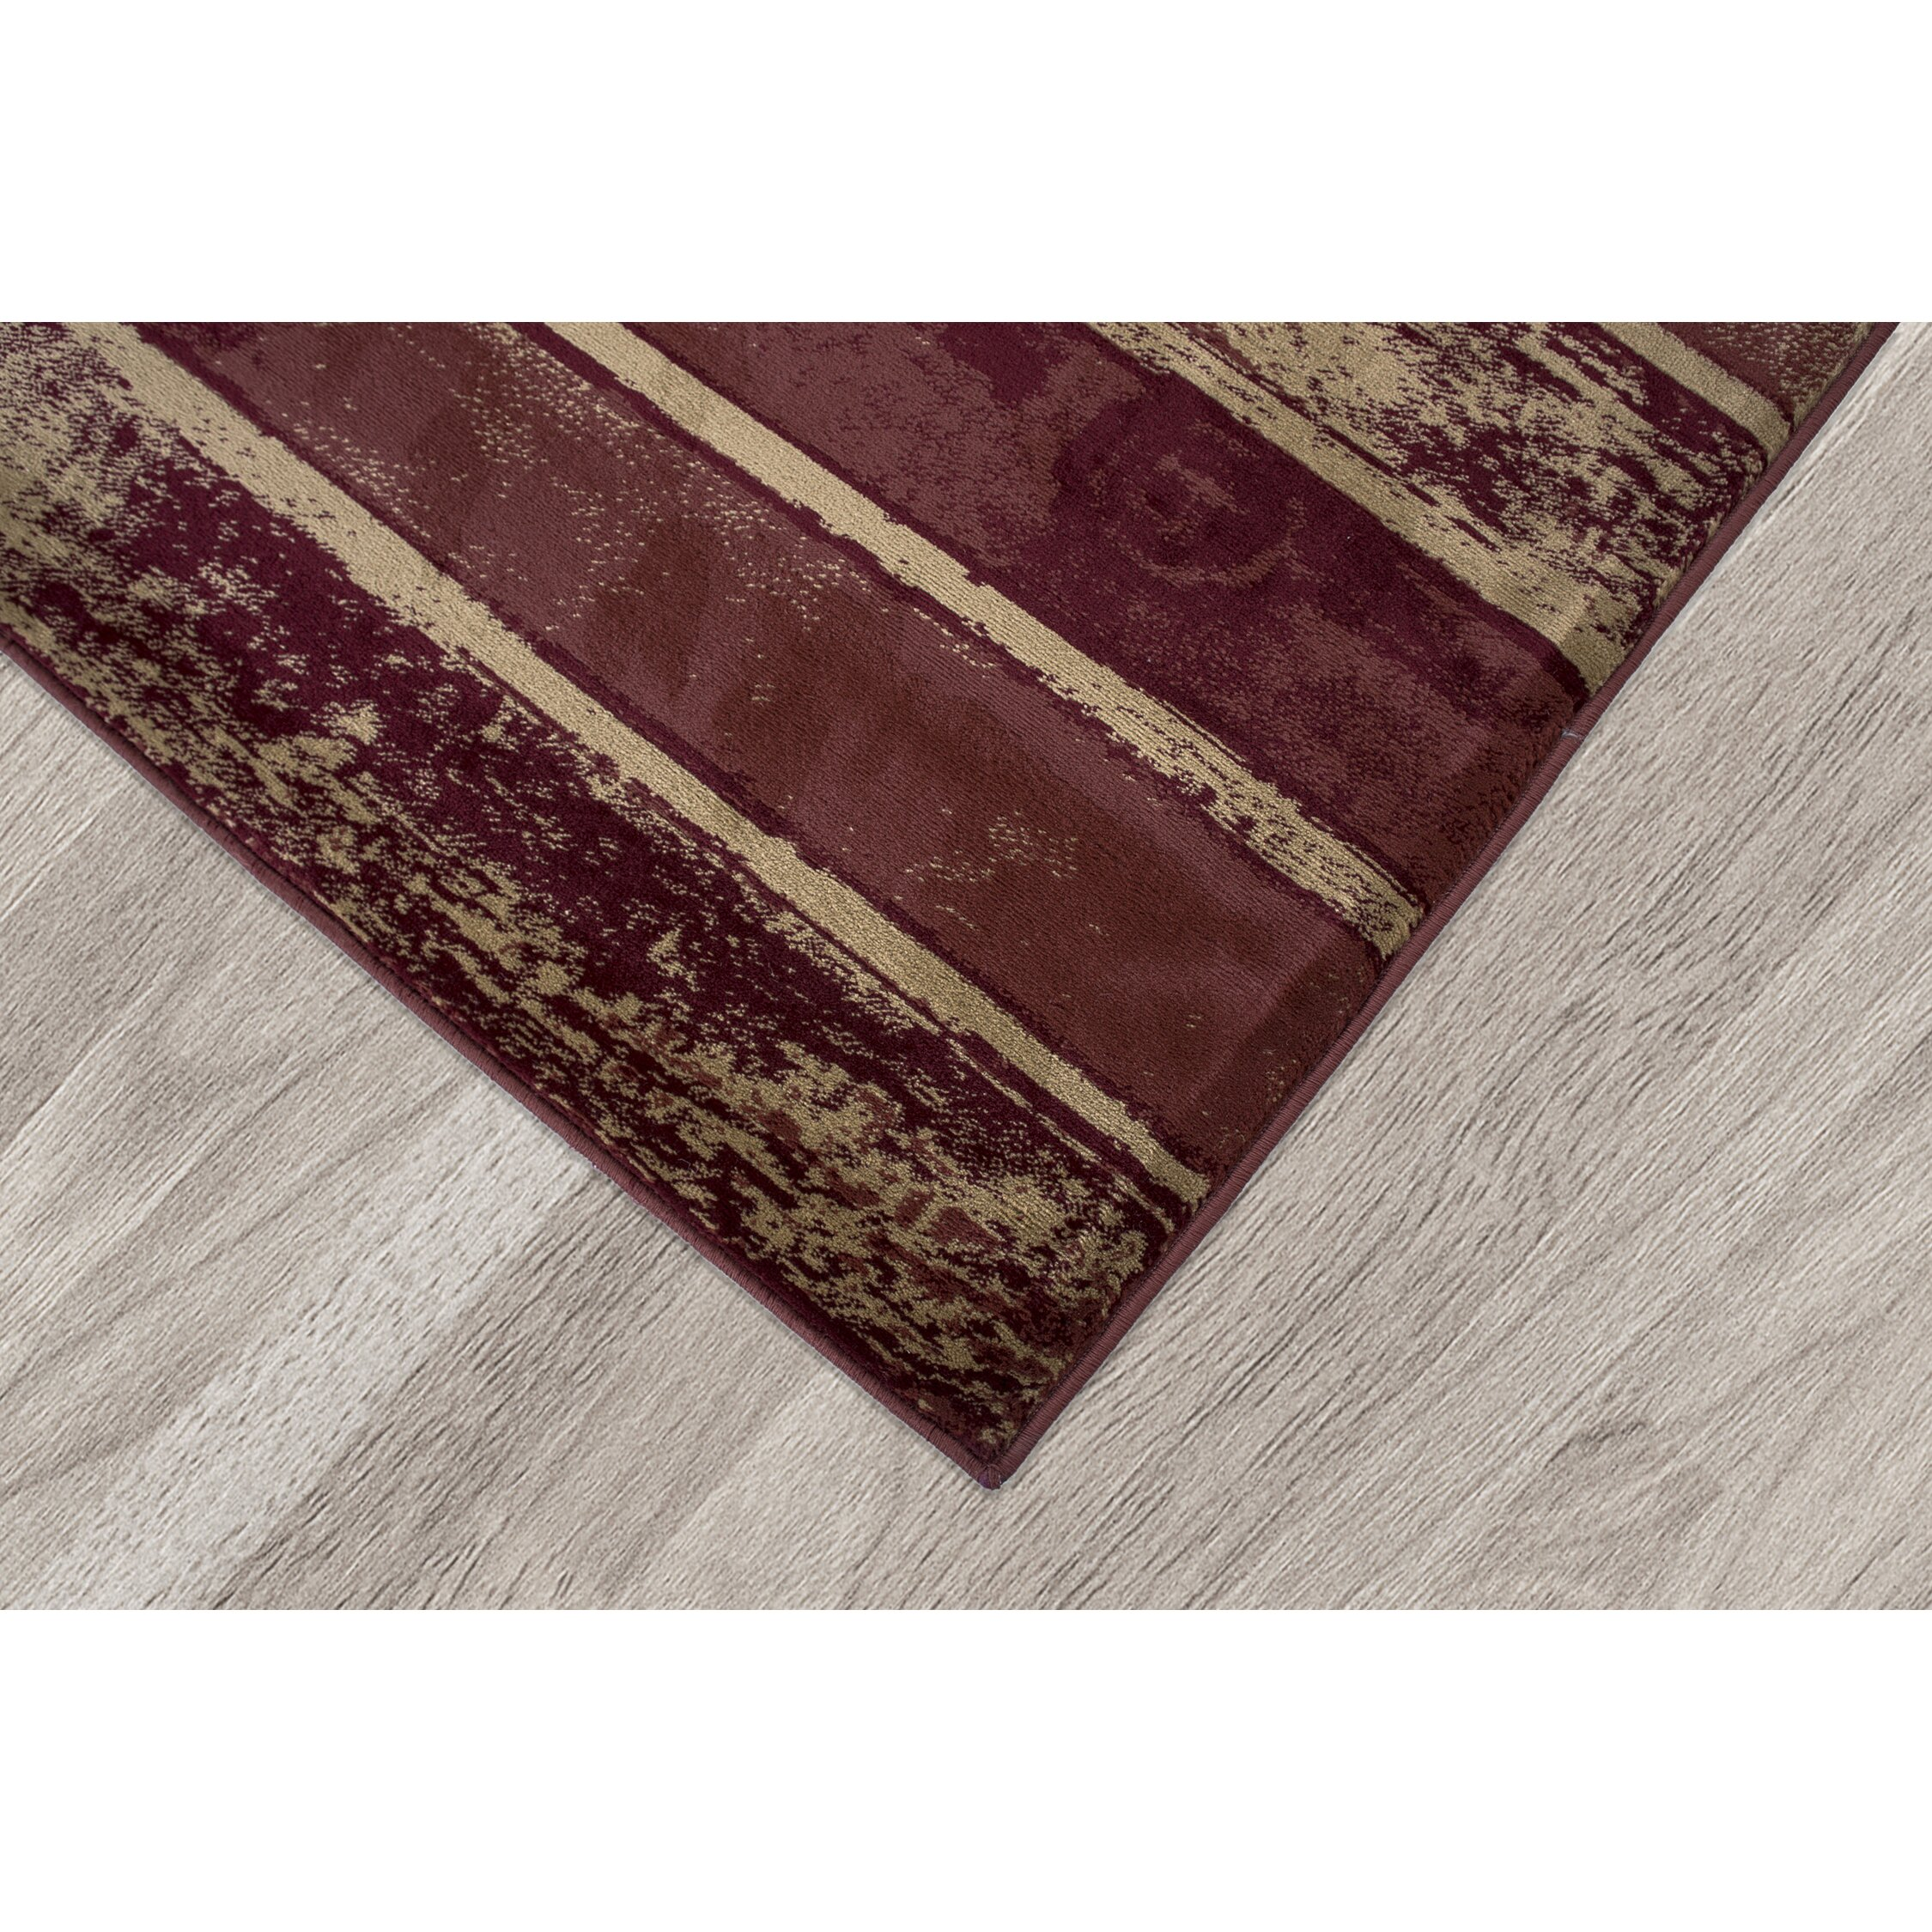 Ottomanson regal contemporary abstract red area rug wayfair for Red area rugs contemporary